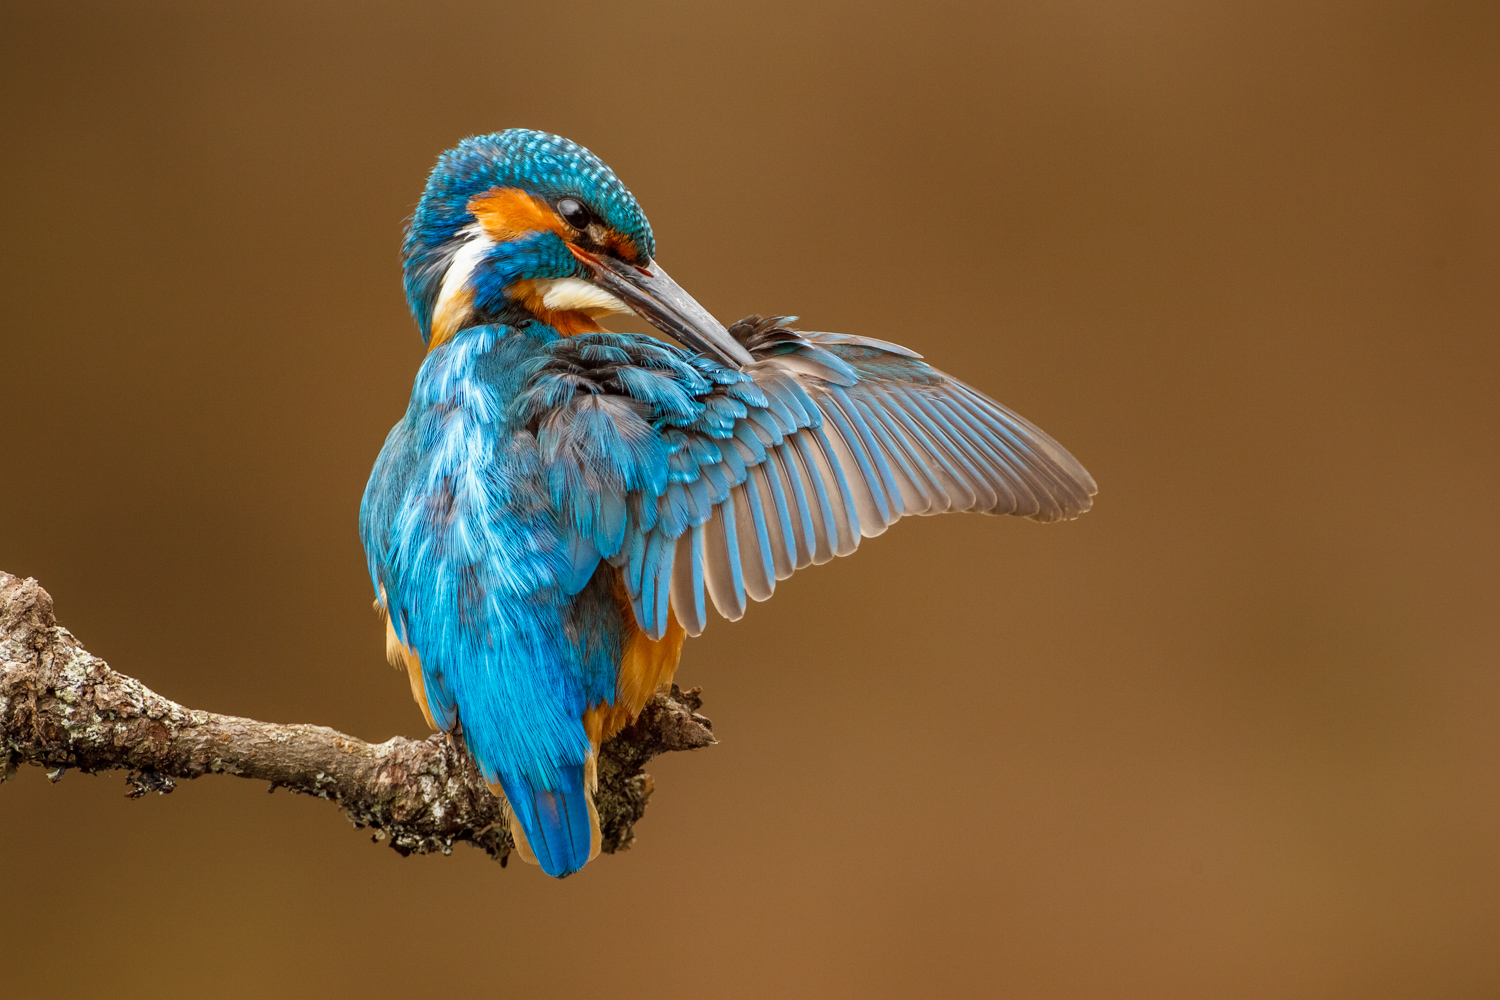 7 Tips for Improving Your Wildlife Photography